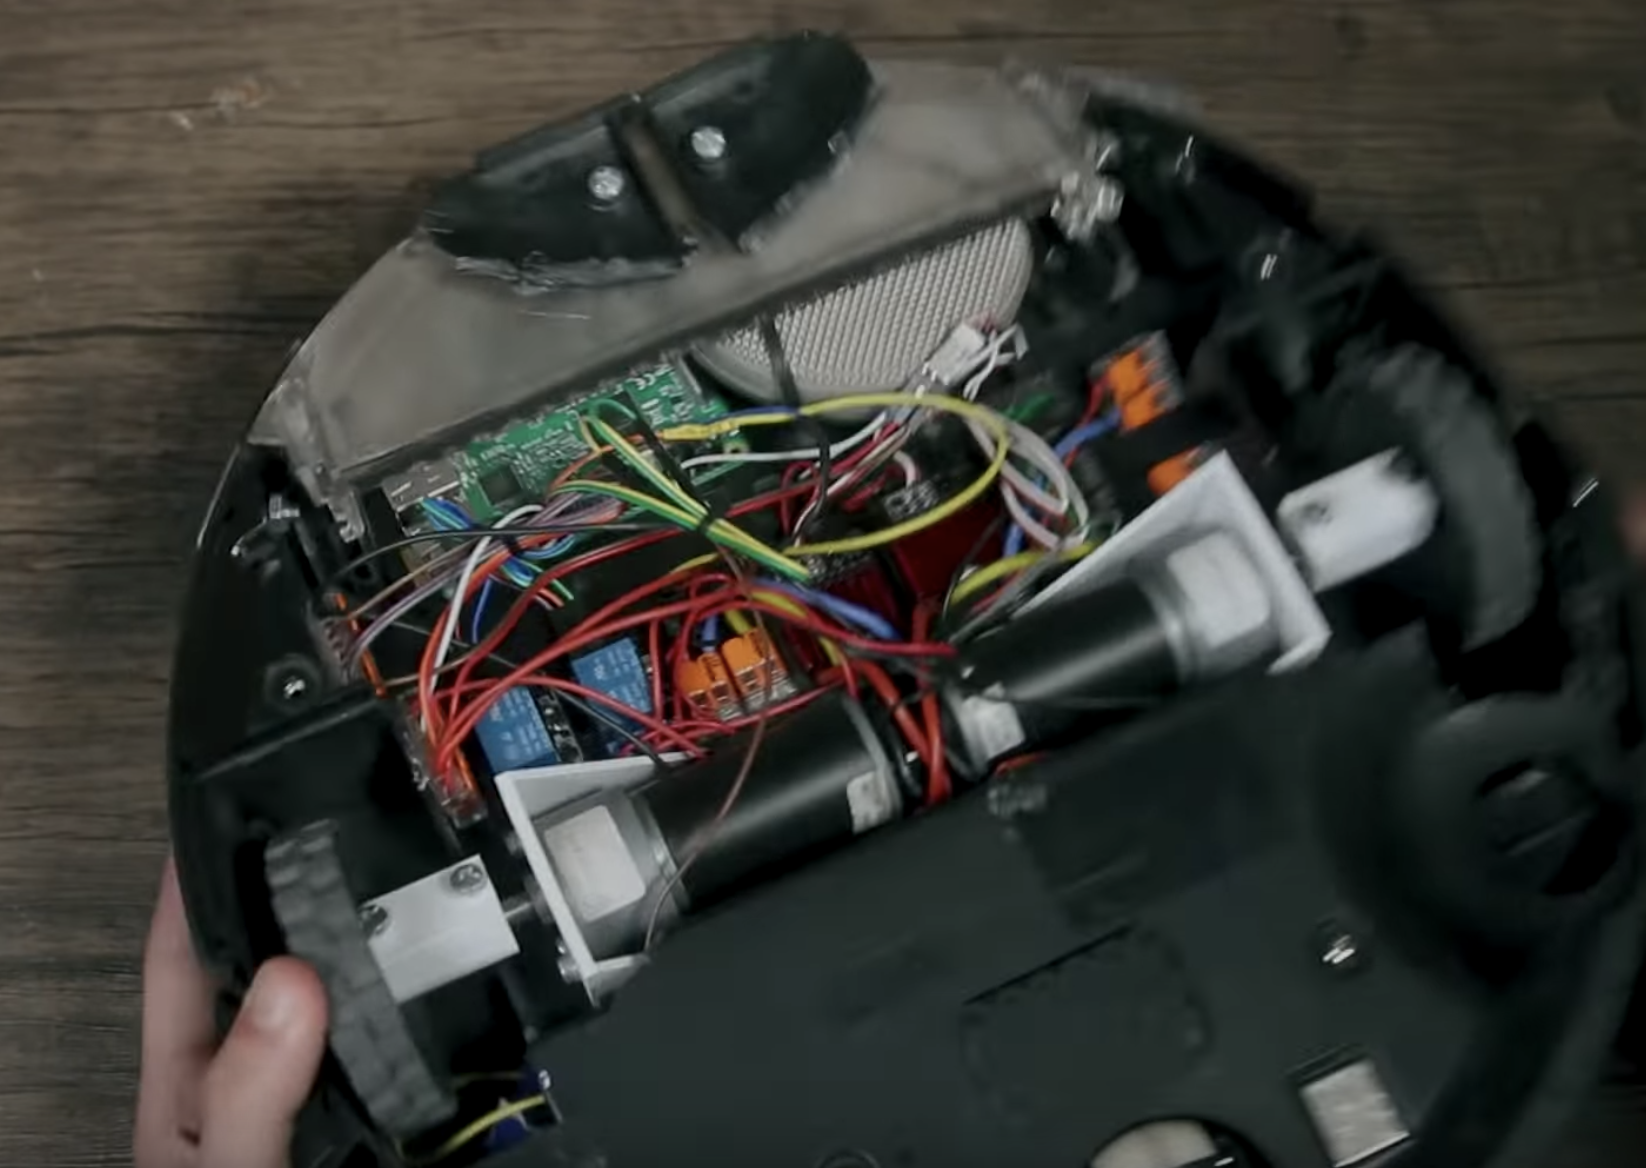 The NSFW Roomba that screams when it bumps into stuff